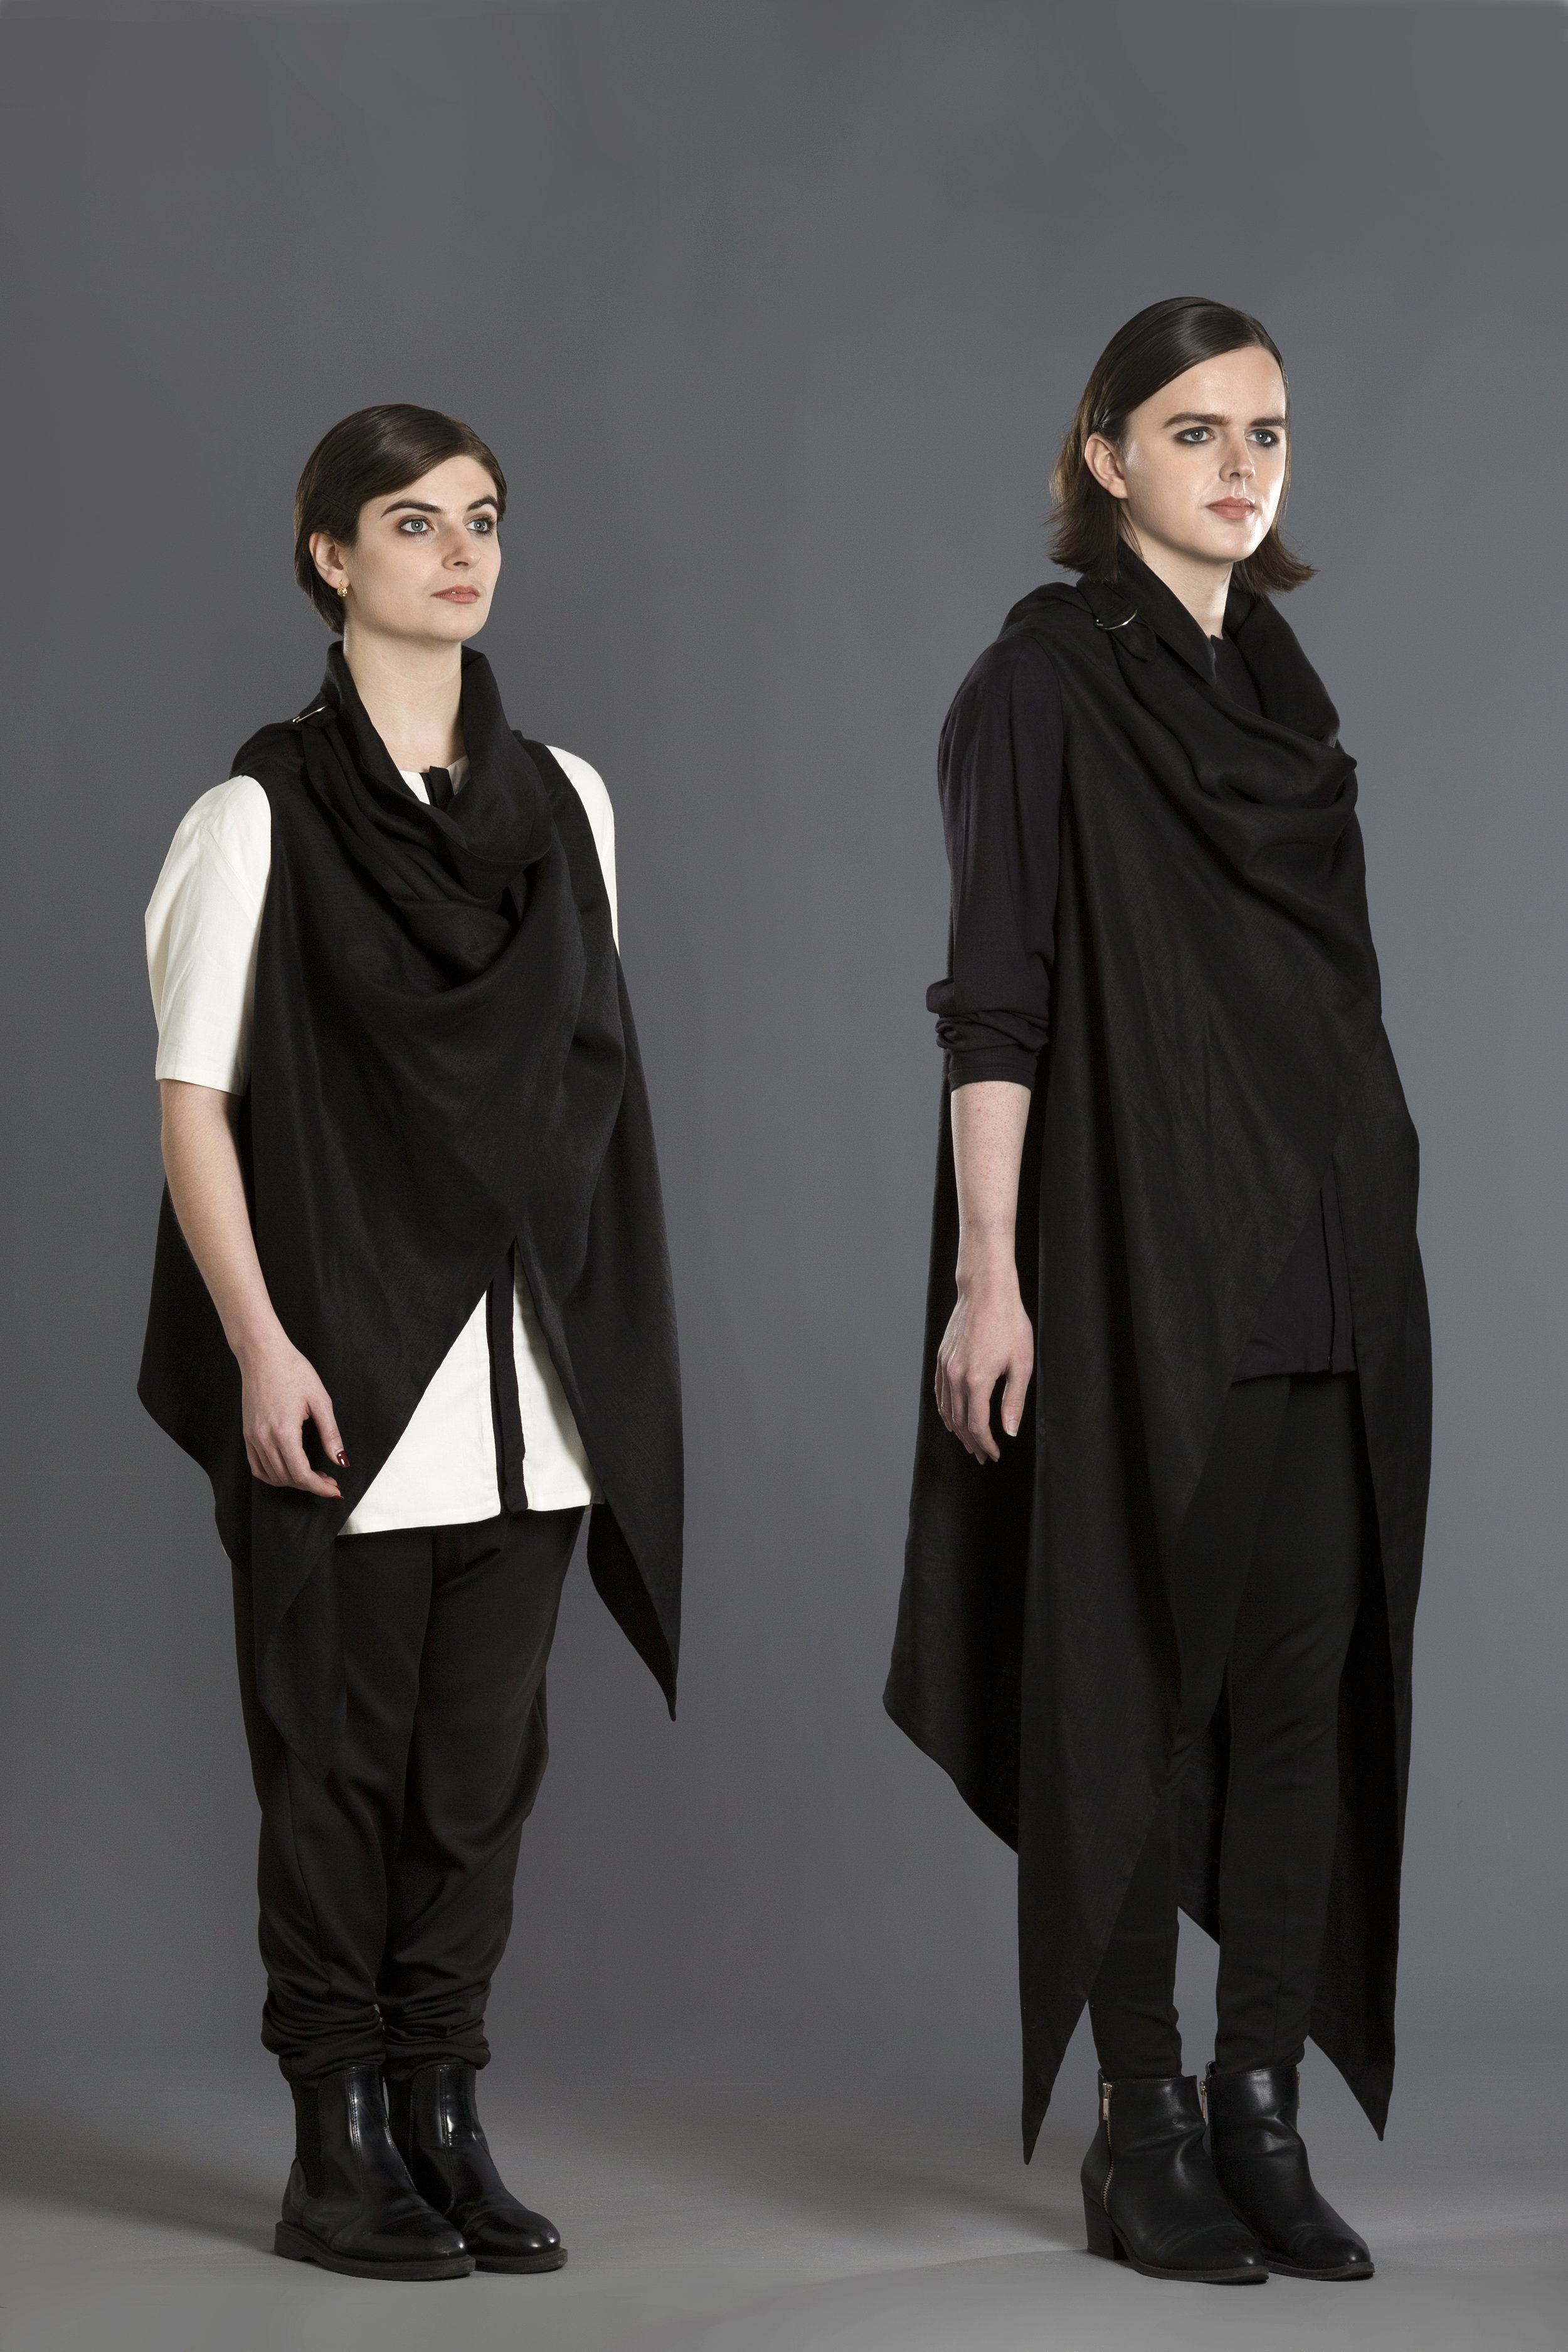 zaramia-ava-zaramiaava-leeds-fashion-designer-ethical-sustainable-black-jacket-drape-layers-dress-linen-unisex-genderless-abbeyhousemuseam-heshethey-top-bamboo-2.jpg